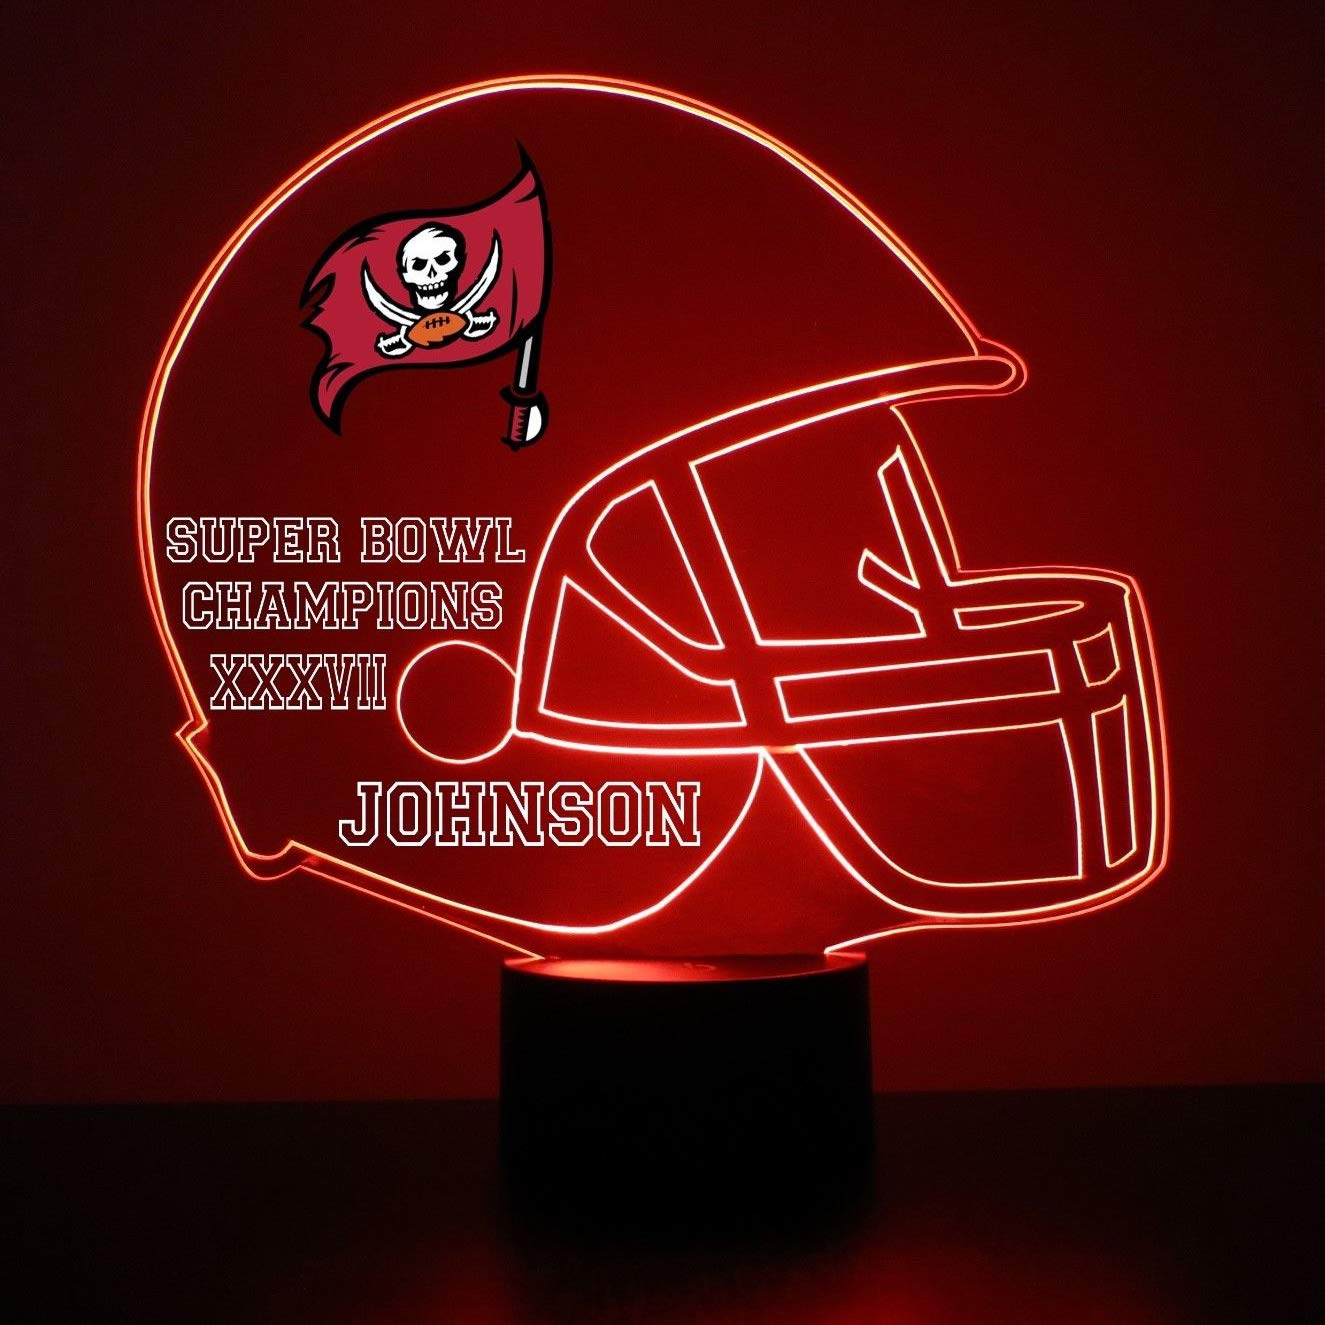 finest selection a37ac cb422 Mirror Magic Store Tampa Bay Buccaneers Football Helmet LED Night Light  with Free Personalization - Night Lamp - Table Lamp - Featuring Licensed  Decal